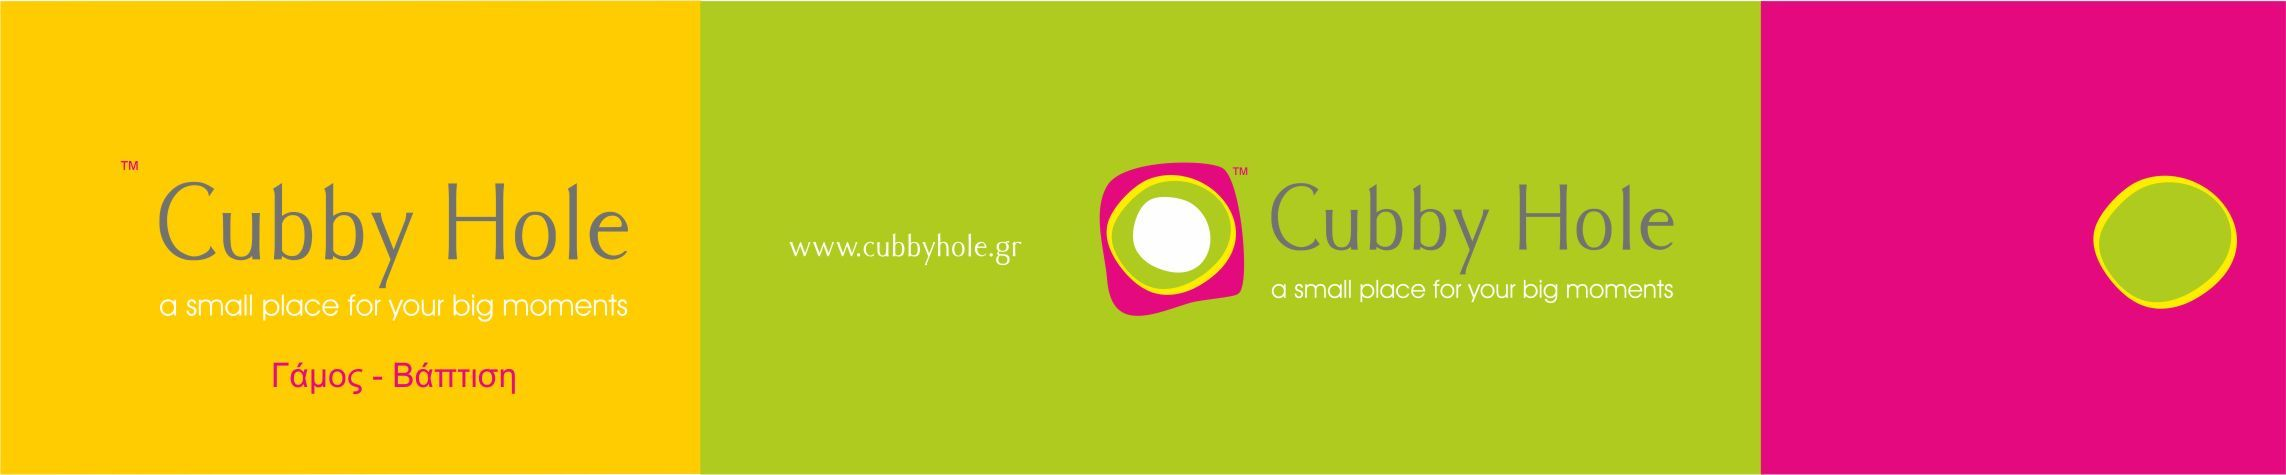 Cubby Hole business cards to print